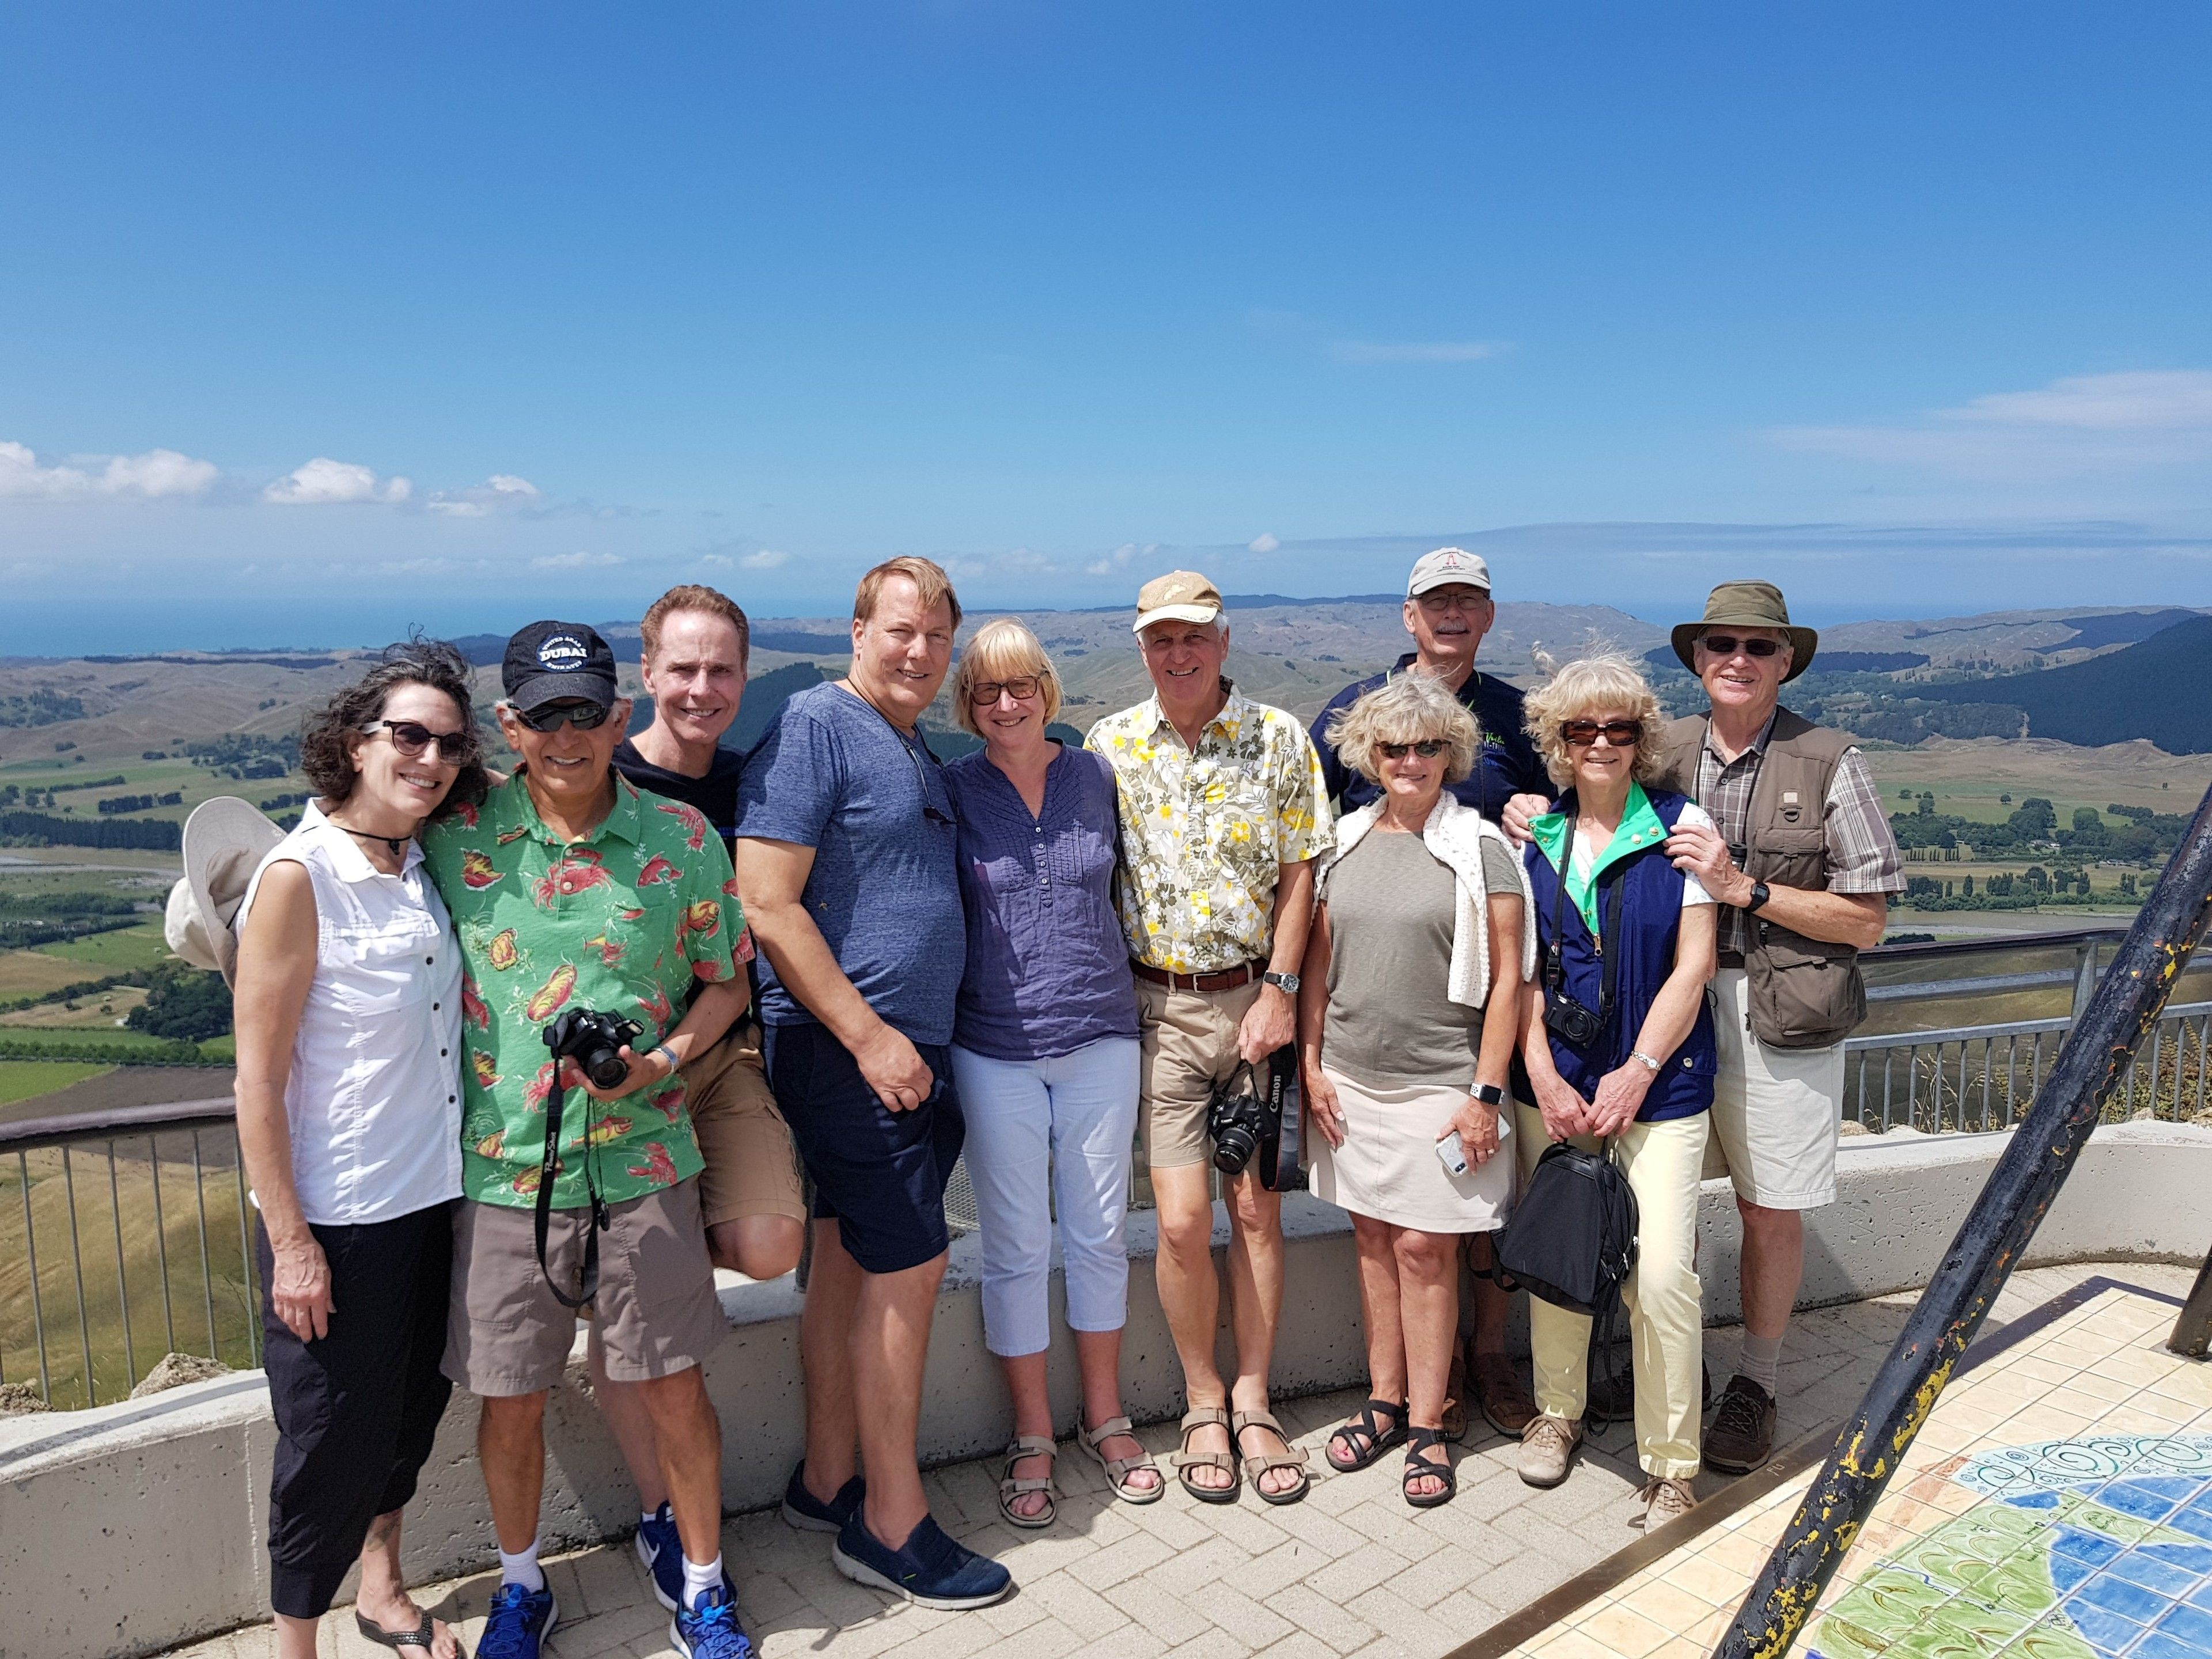 A Grand Day Out - full day tour of Napier